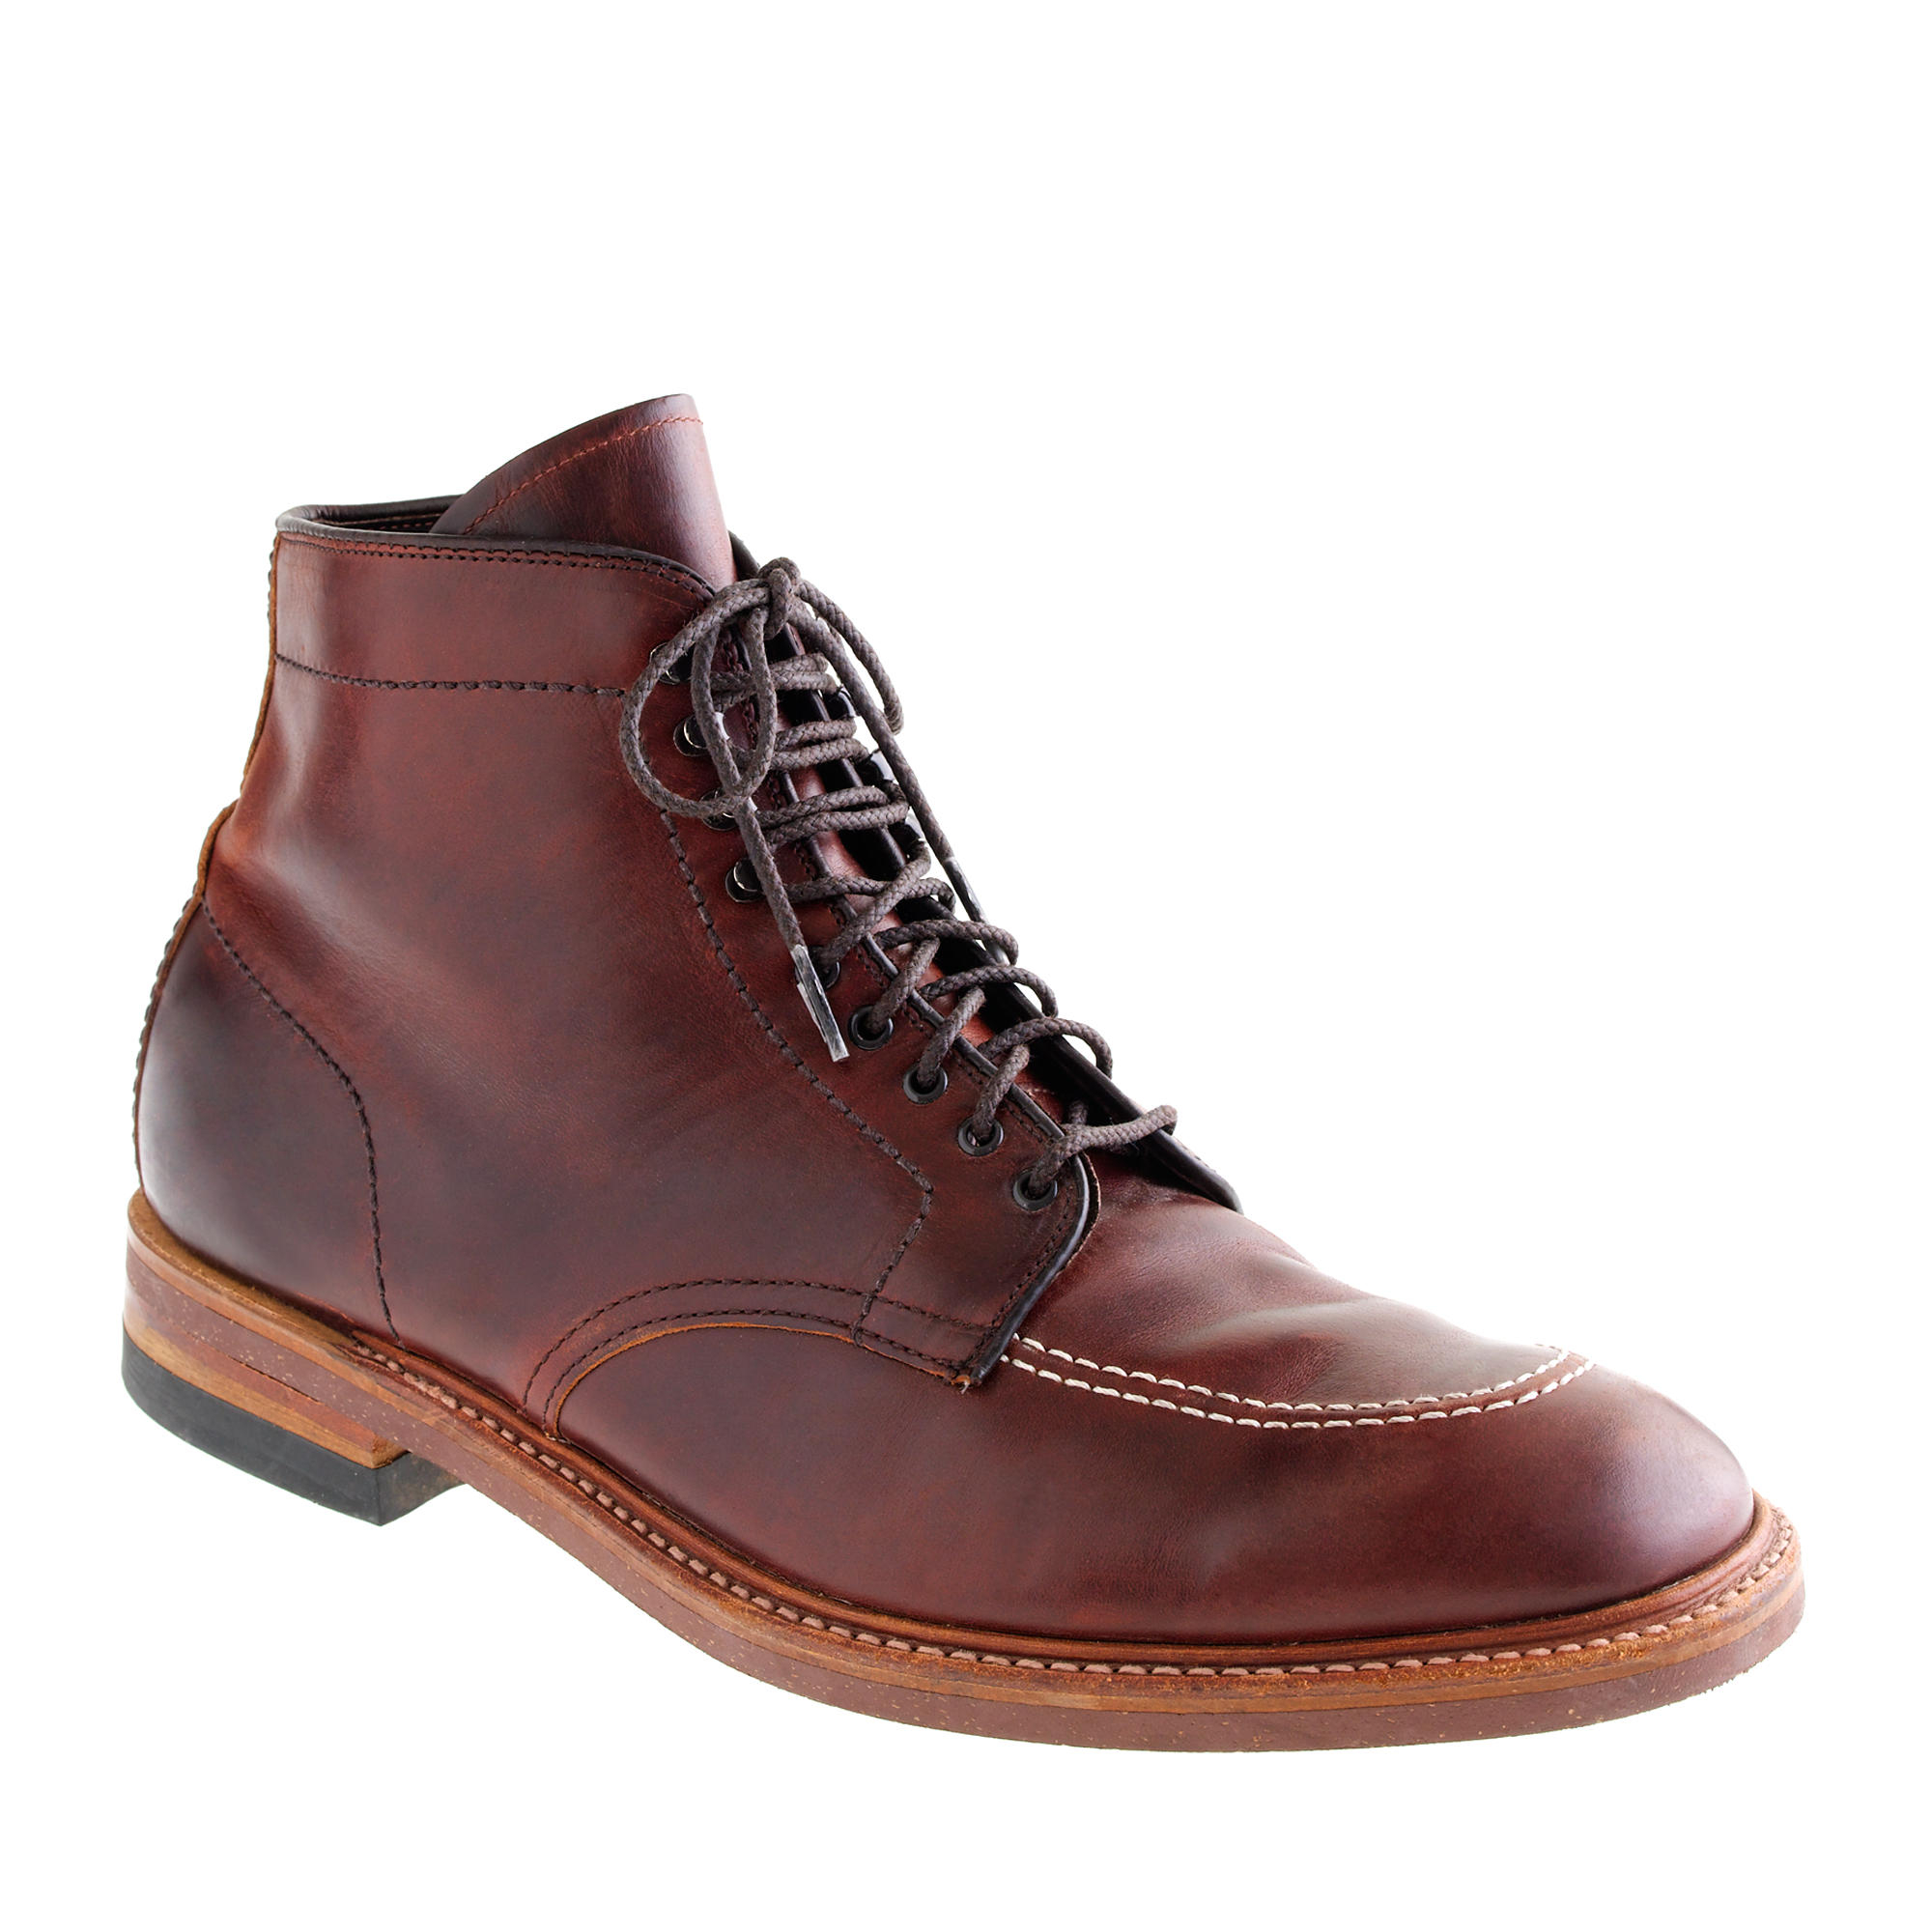 Alden 405 Indy Boots In Brown For Men Lyst